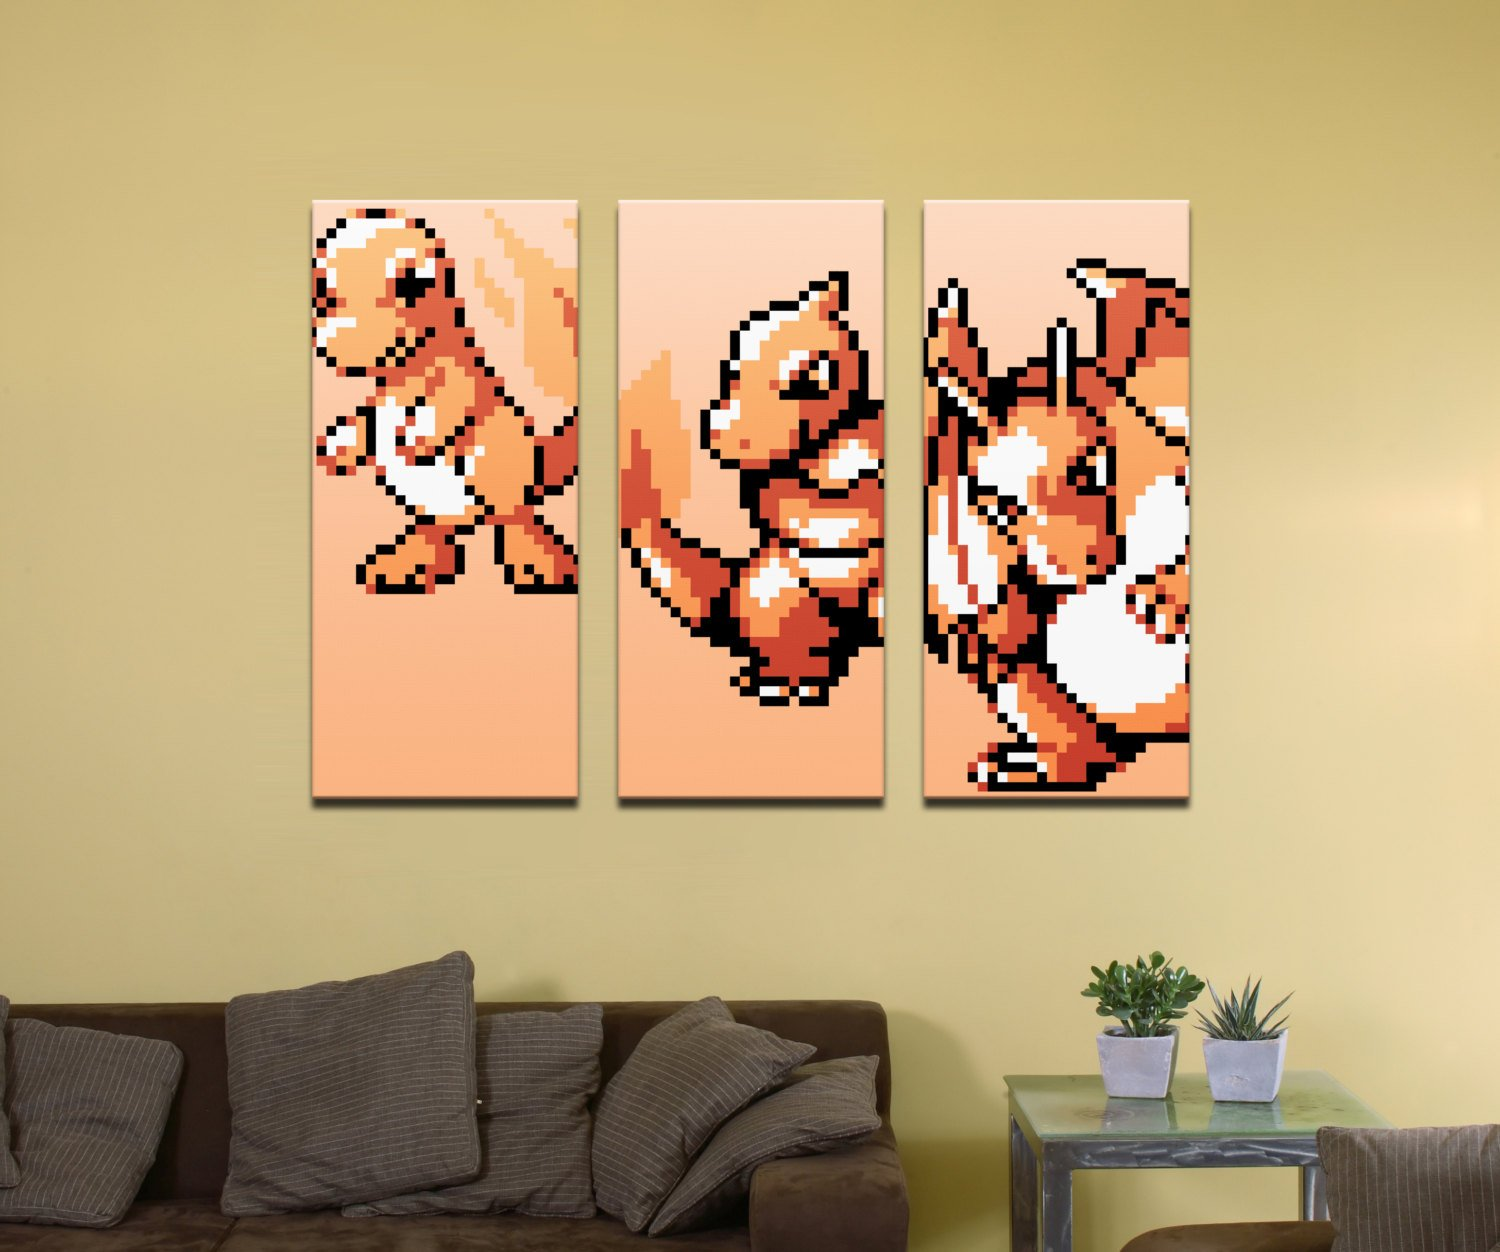 "Pokemon Fire Type Starter (Gen 1) Evolutionary Line - 48"" x 36"" Three-Piece Canvas Wrap Mural"